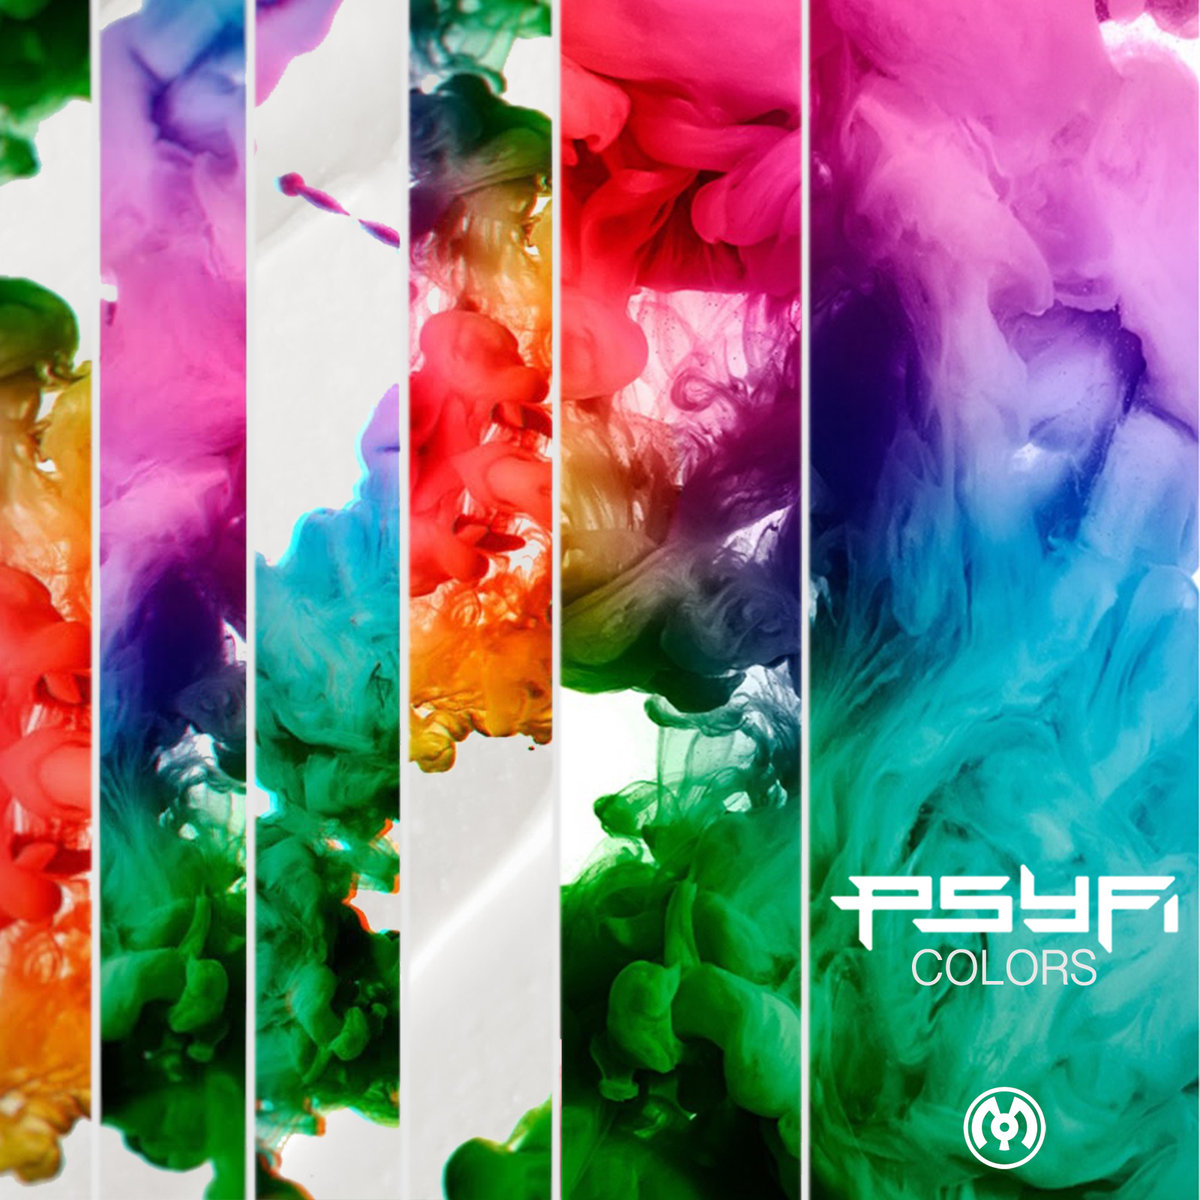 Psy Fi - Redliner (Muppet Punk Remix) @ 'Colors' album (electronic, dubstep)